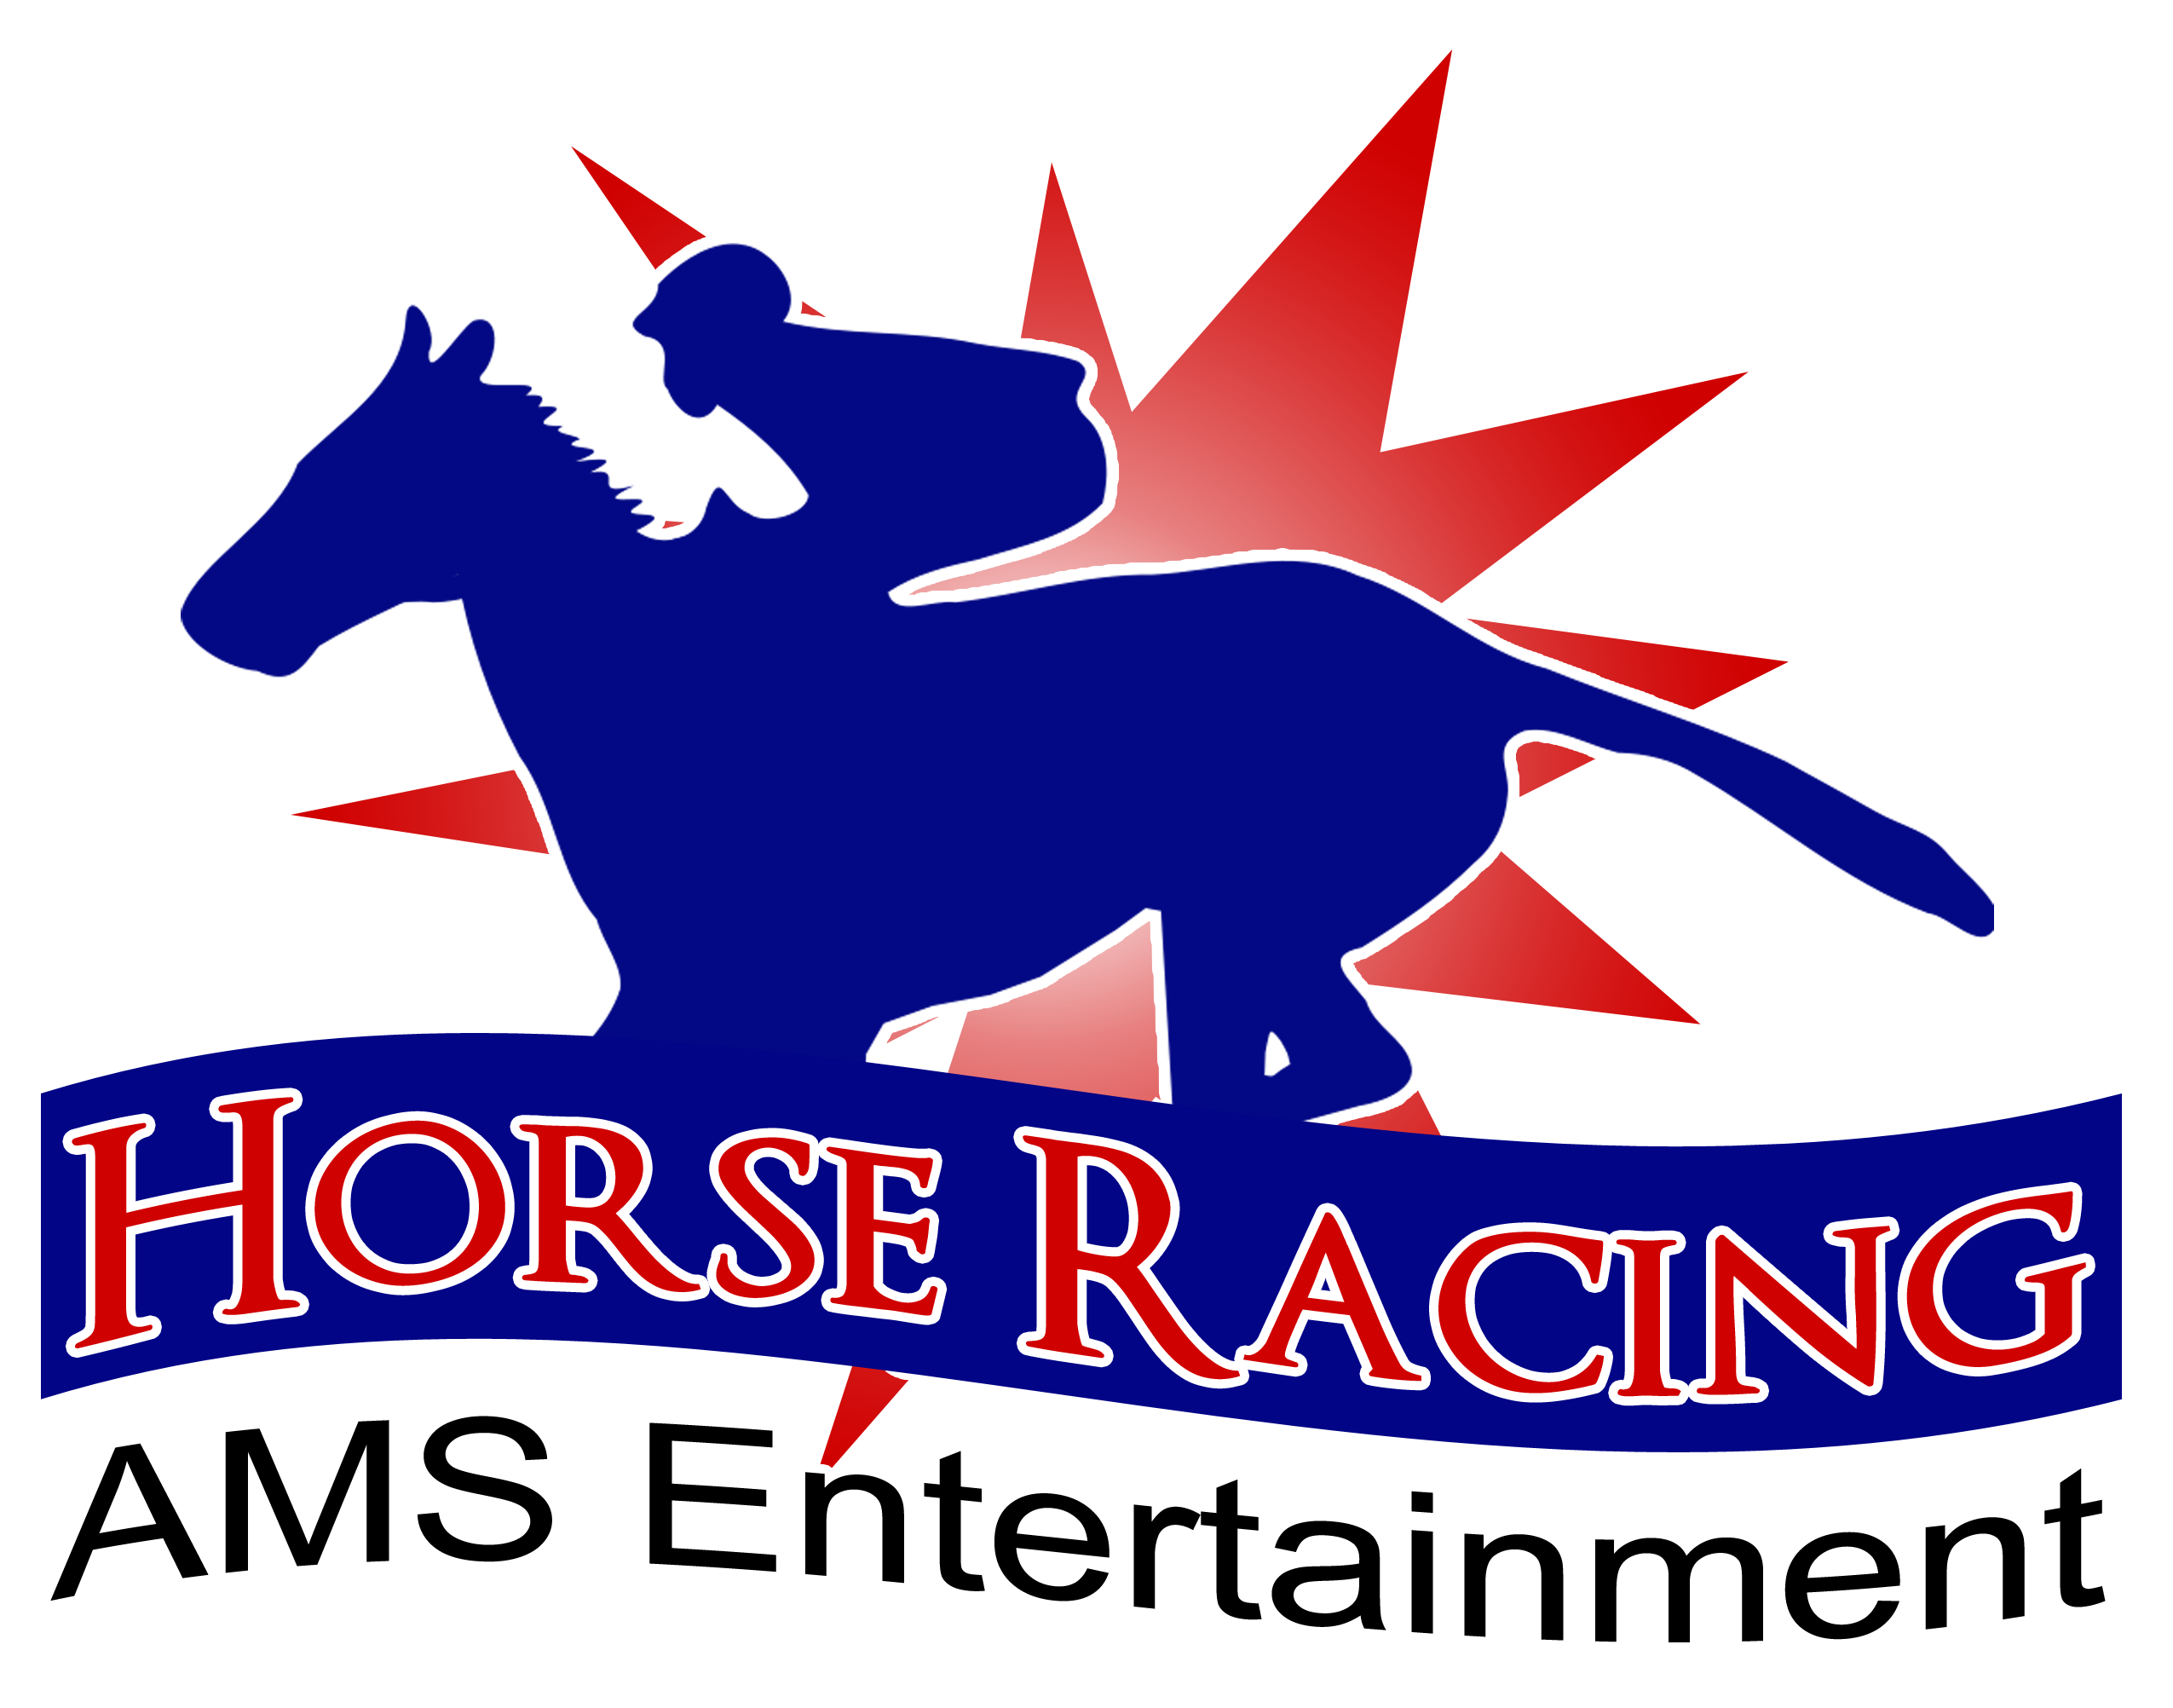 Horse Racing Ams Entertainment